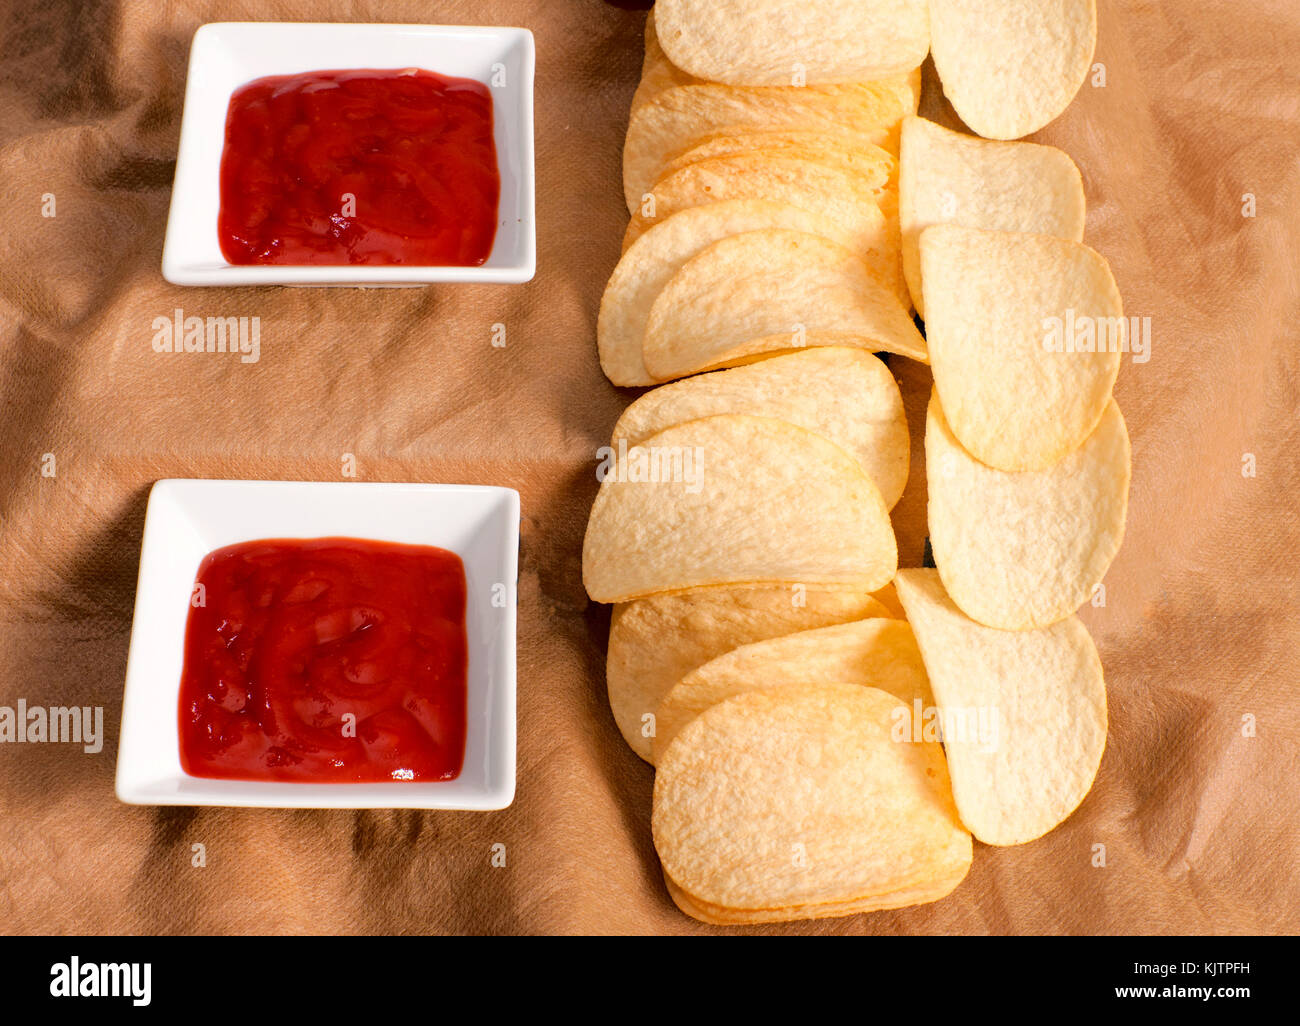 Potato chips and ketchup shoot in low key technique - Stock Image